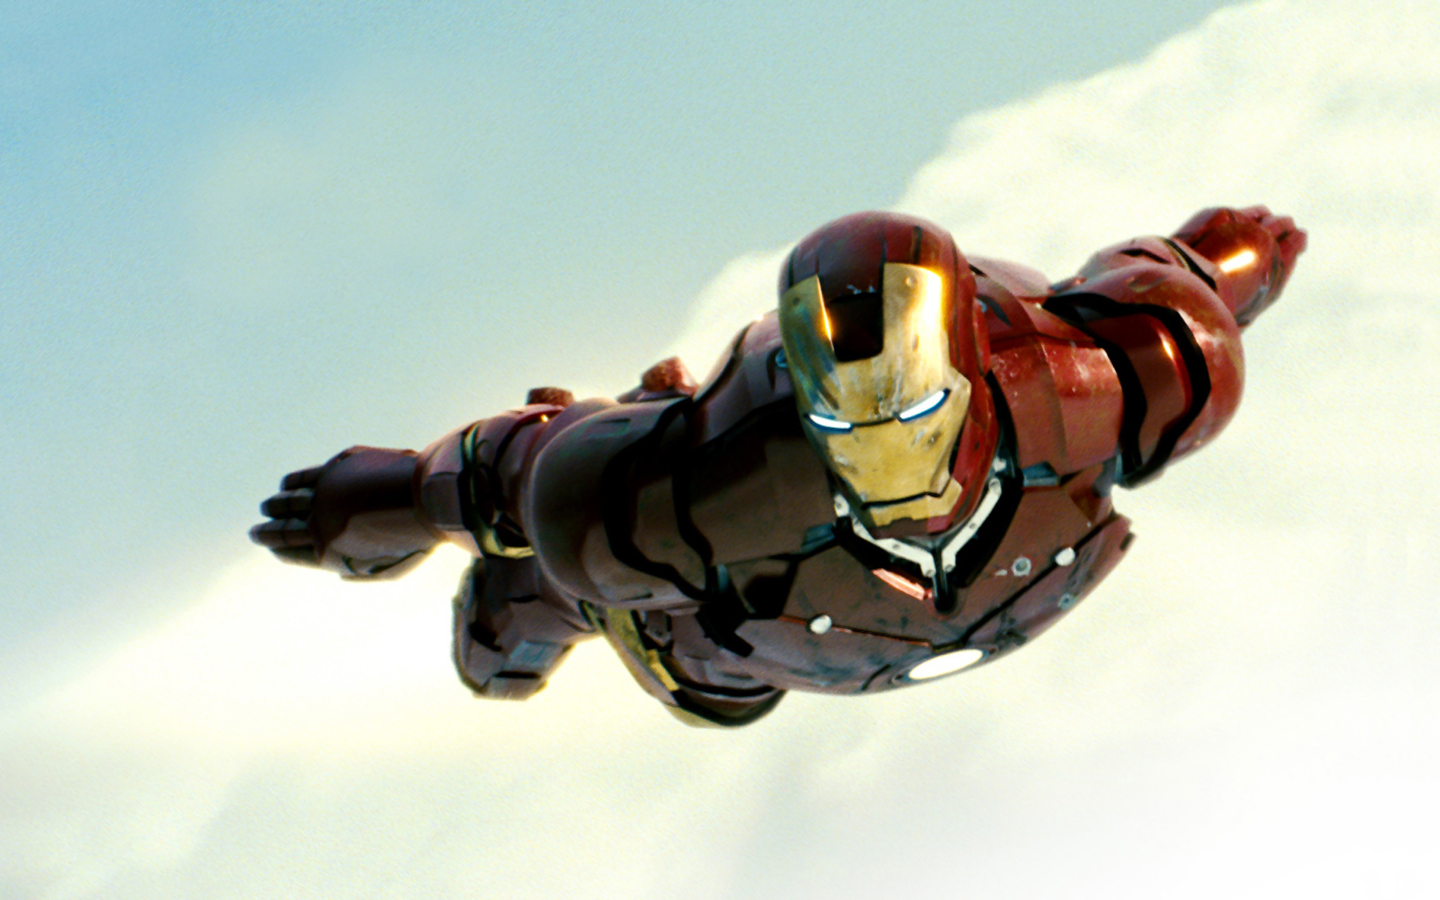 Download iron man 3 hd wallpapers